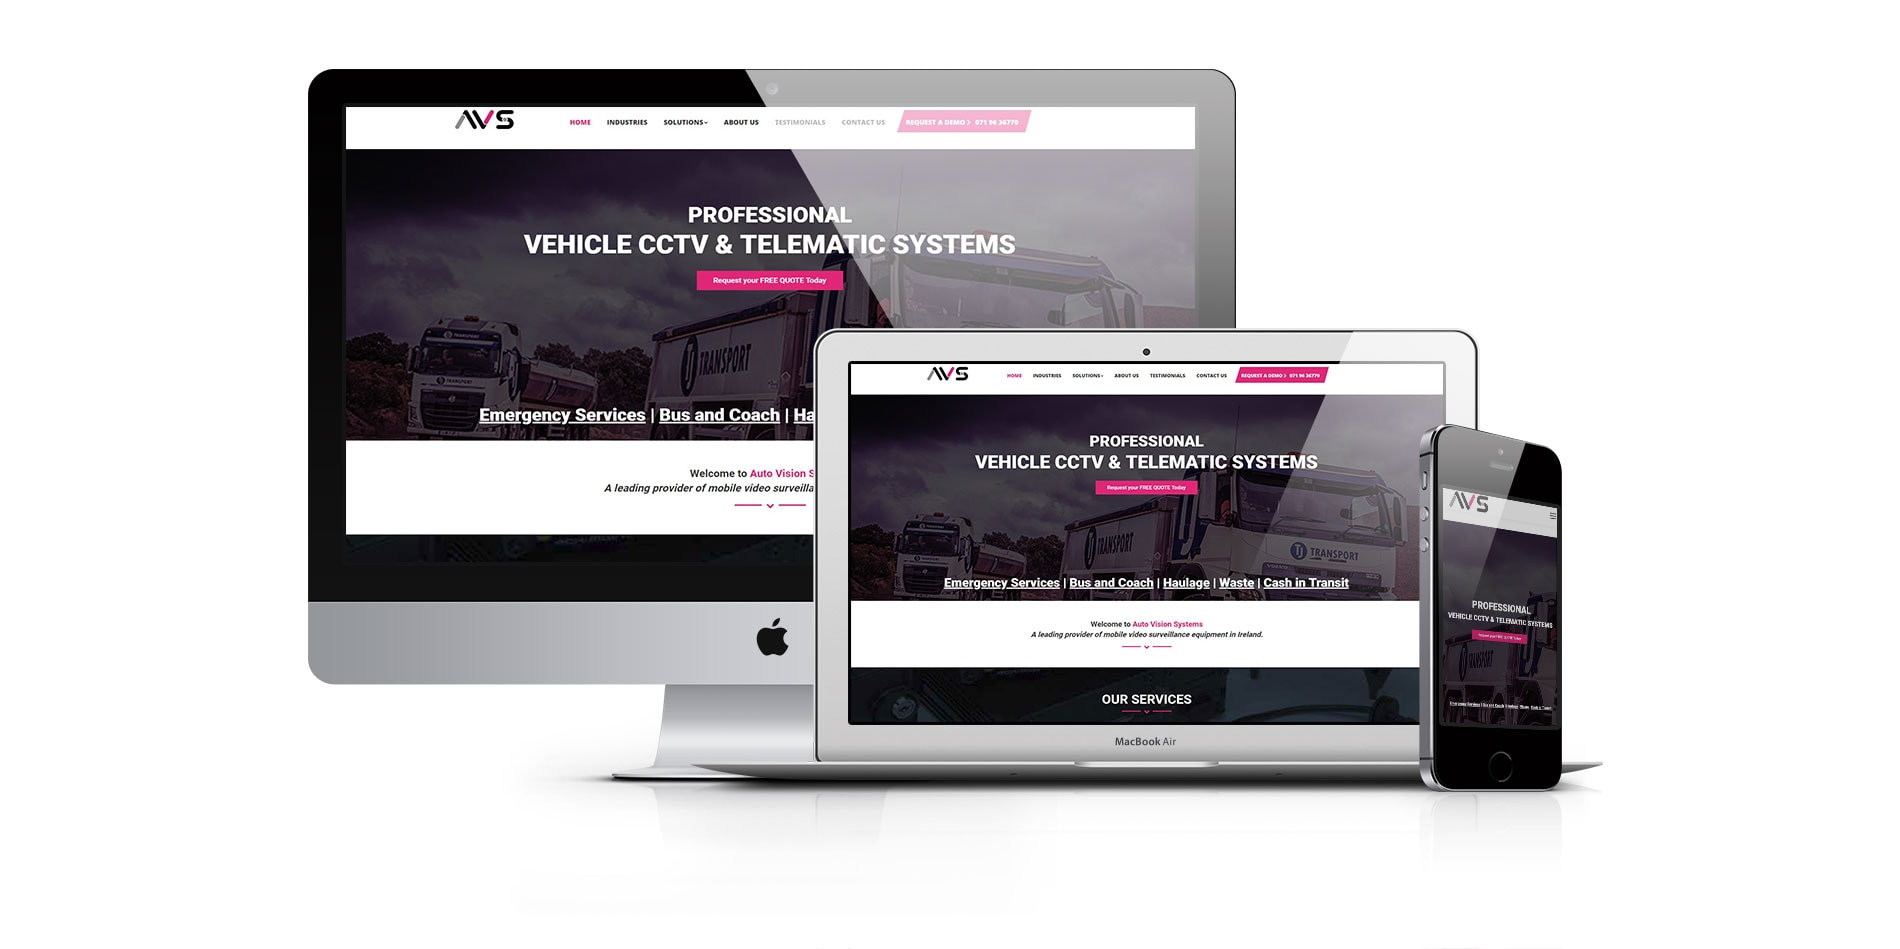 Auto Vision Systems website design project done by ck website design dublin